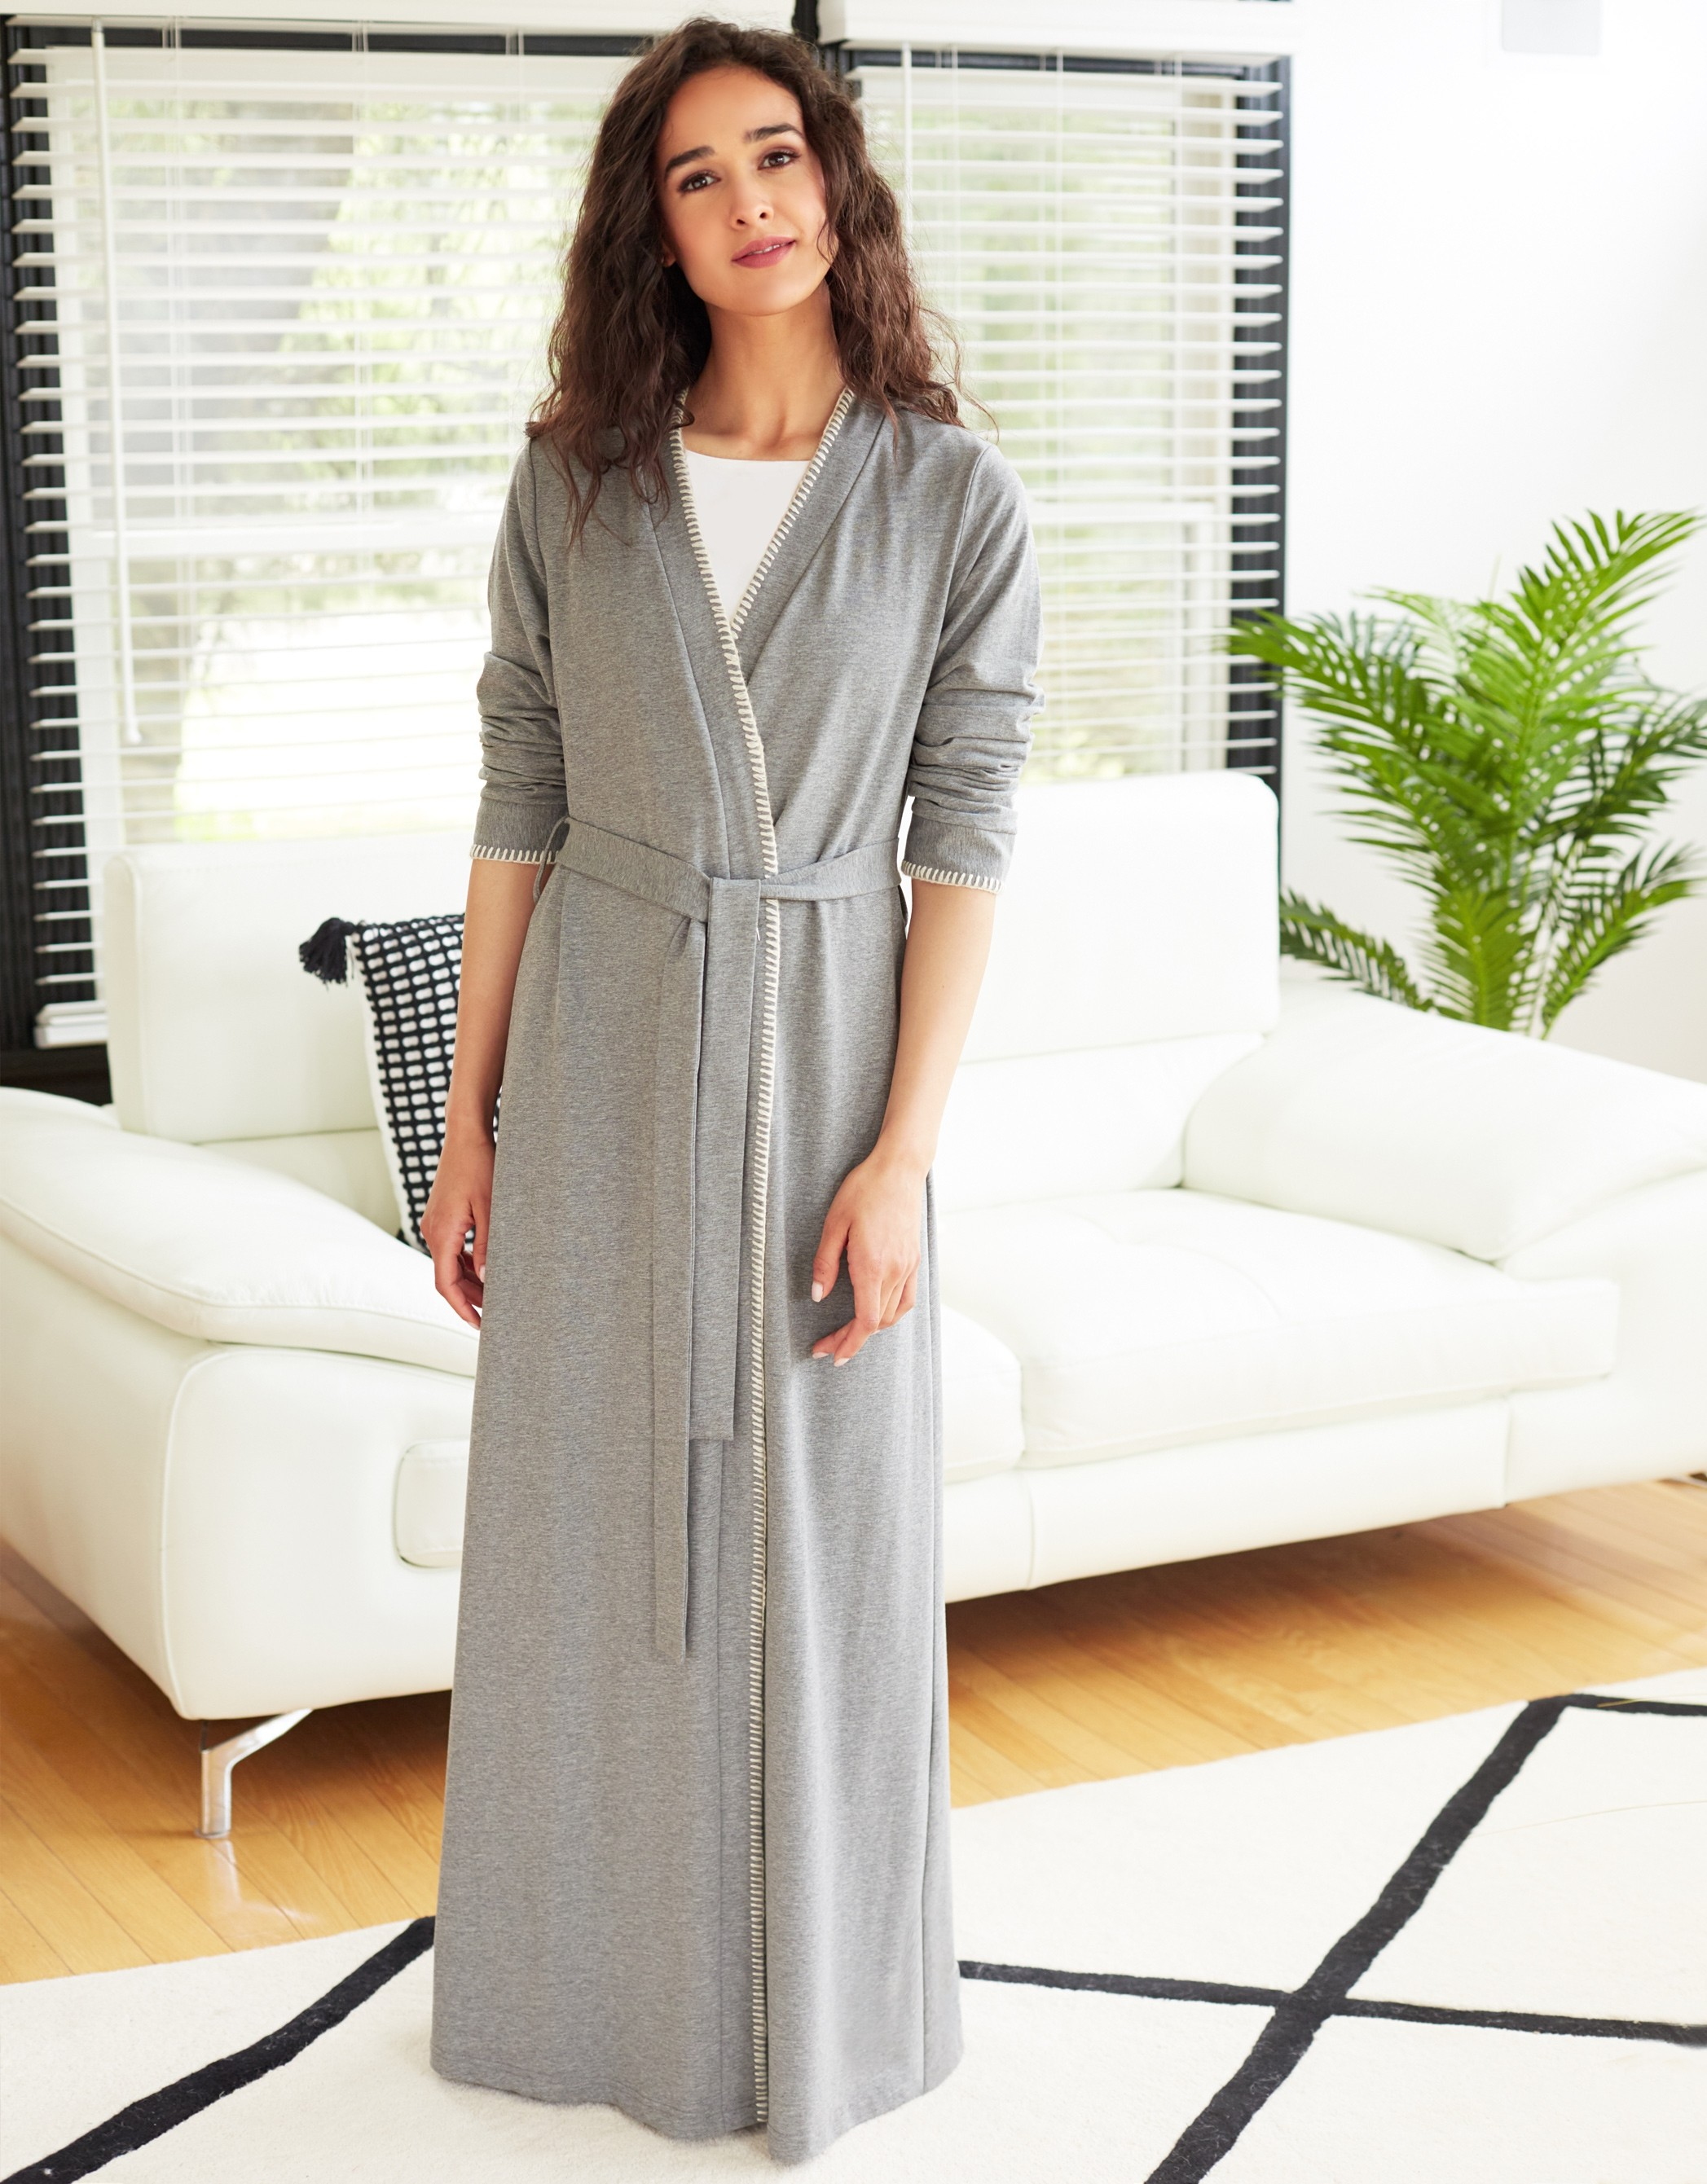 Cotton Knit Belted Wrap Robe with Blanket Stitch